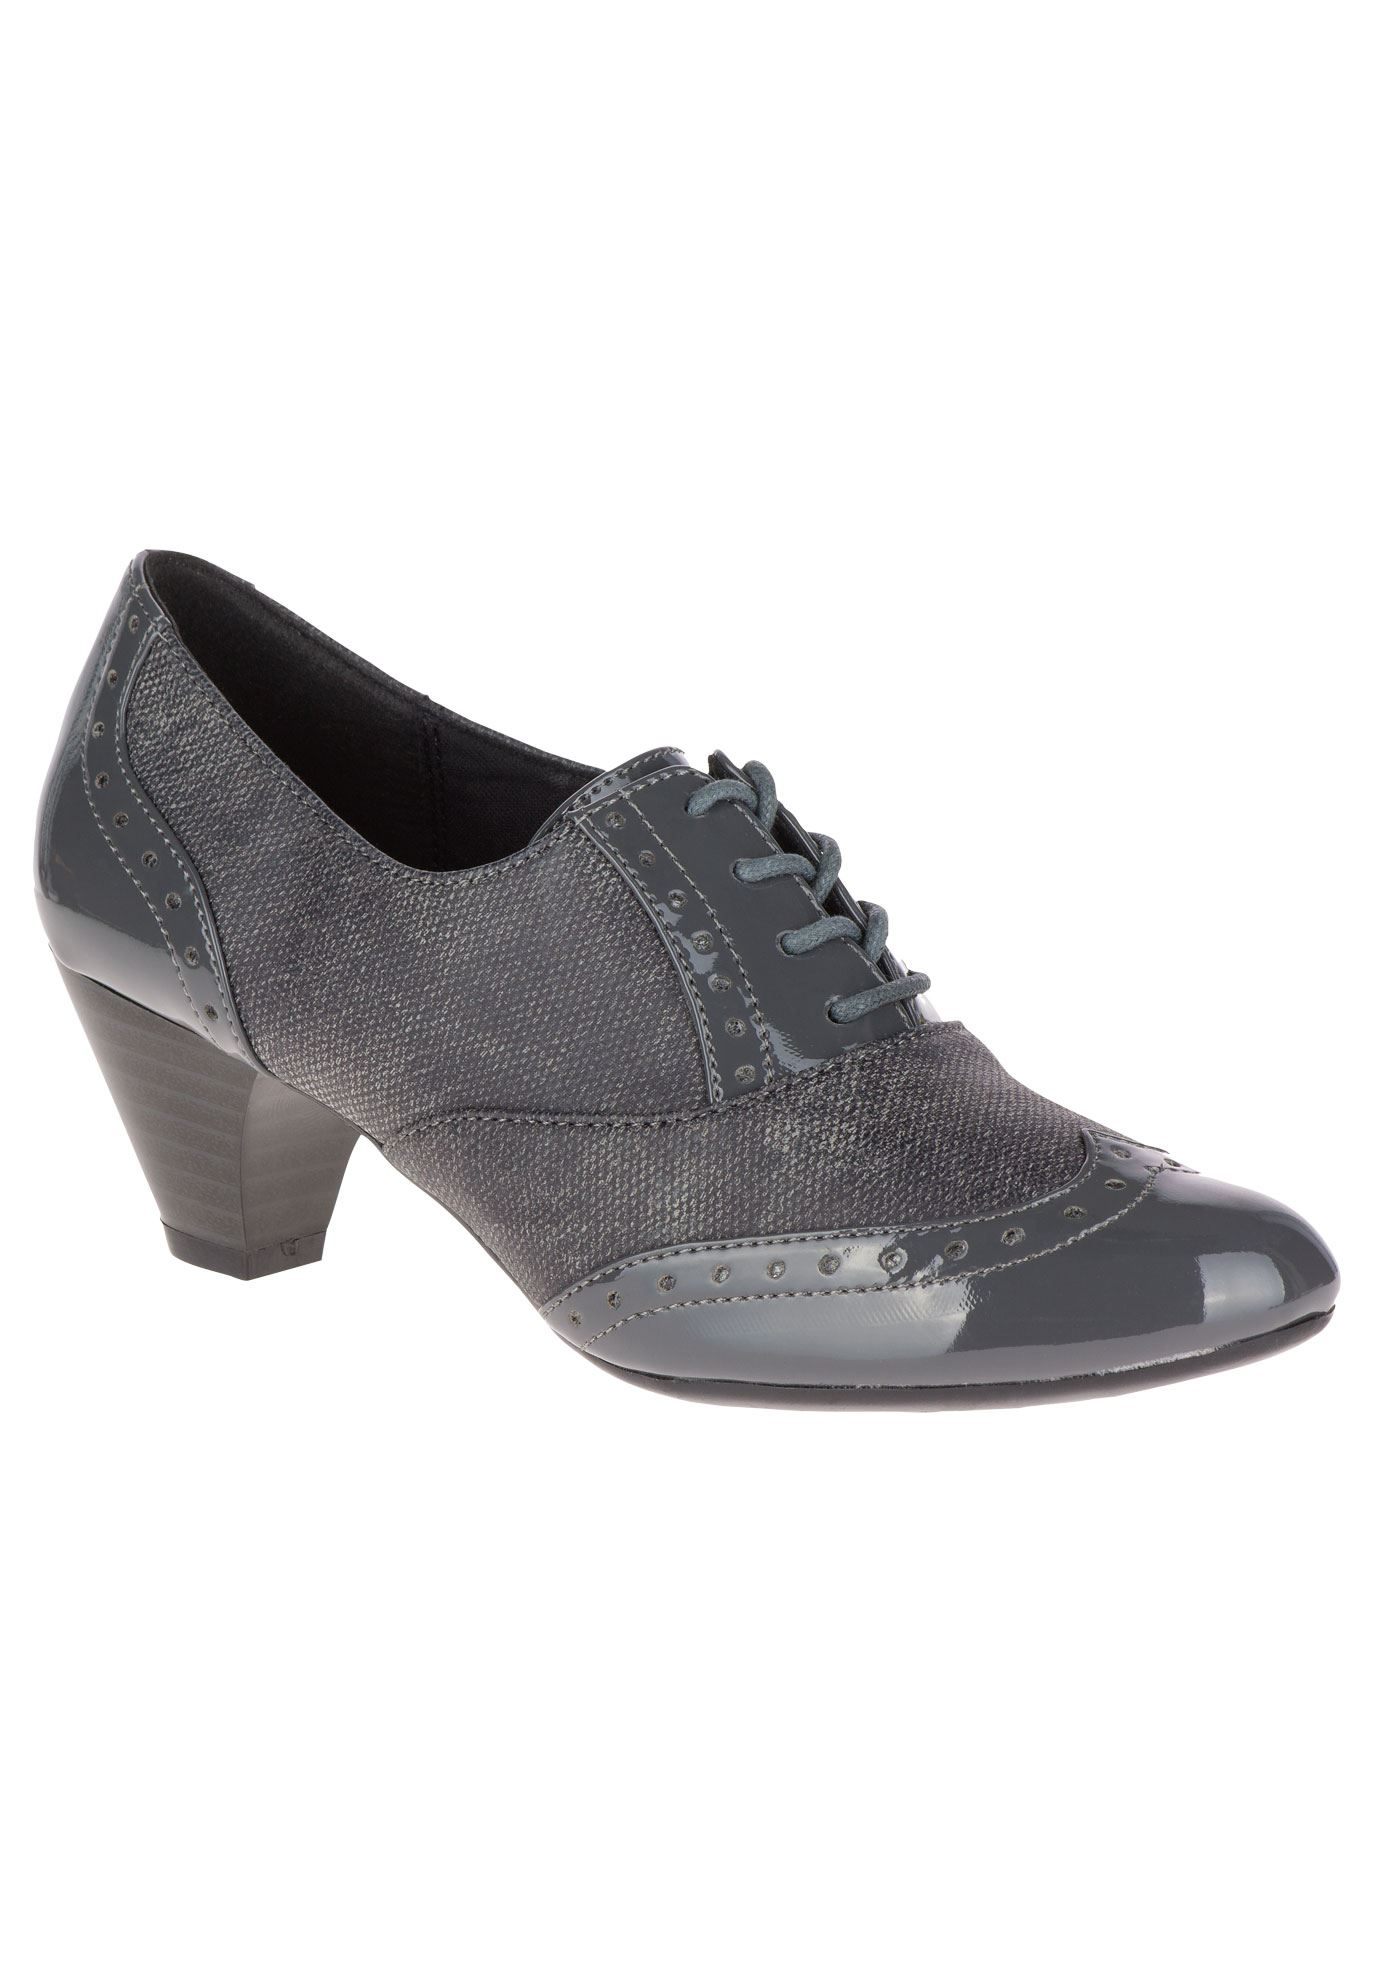 Gianna Pumps by Soft Style,